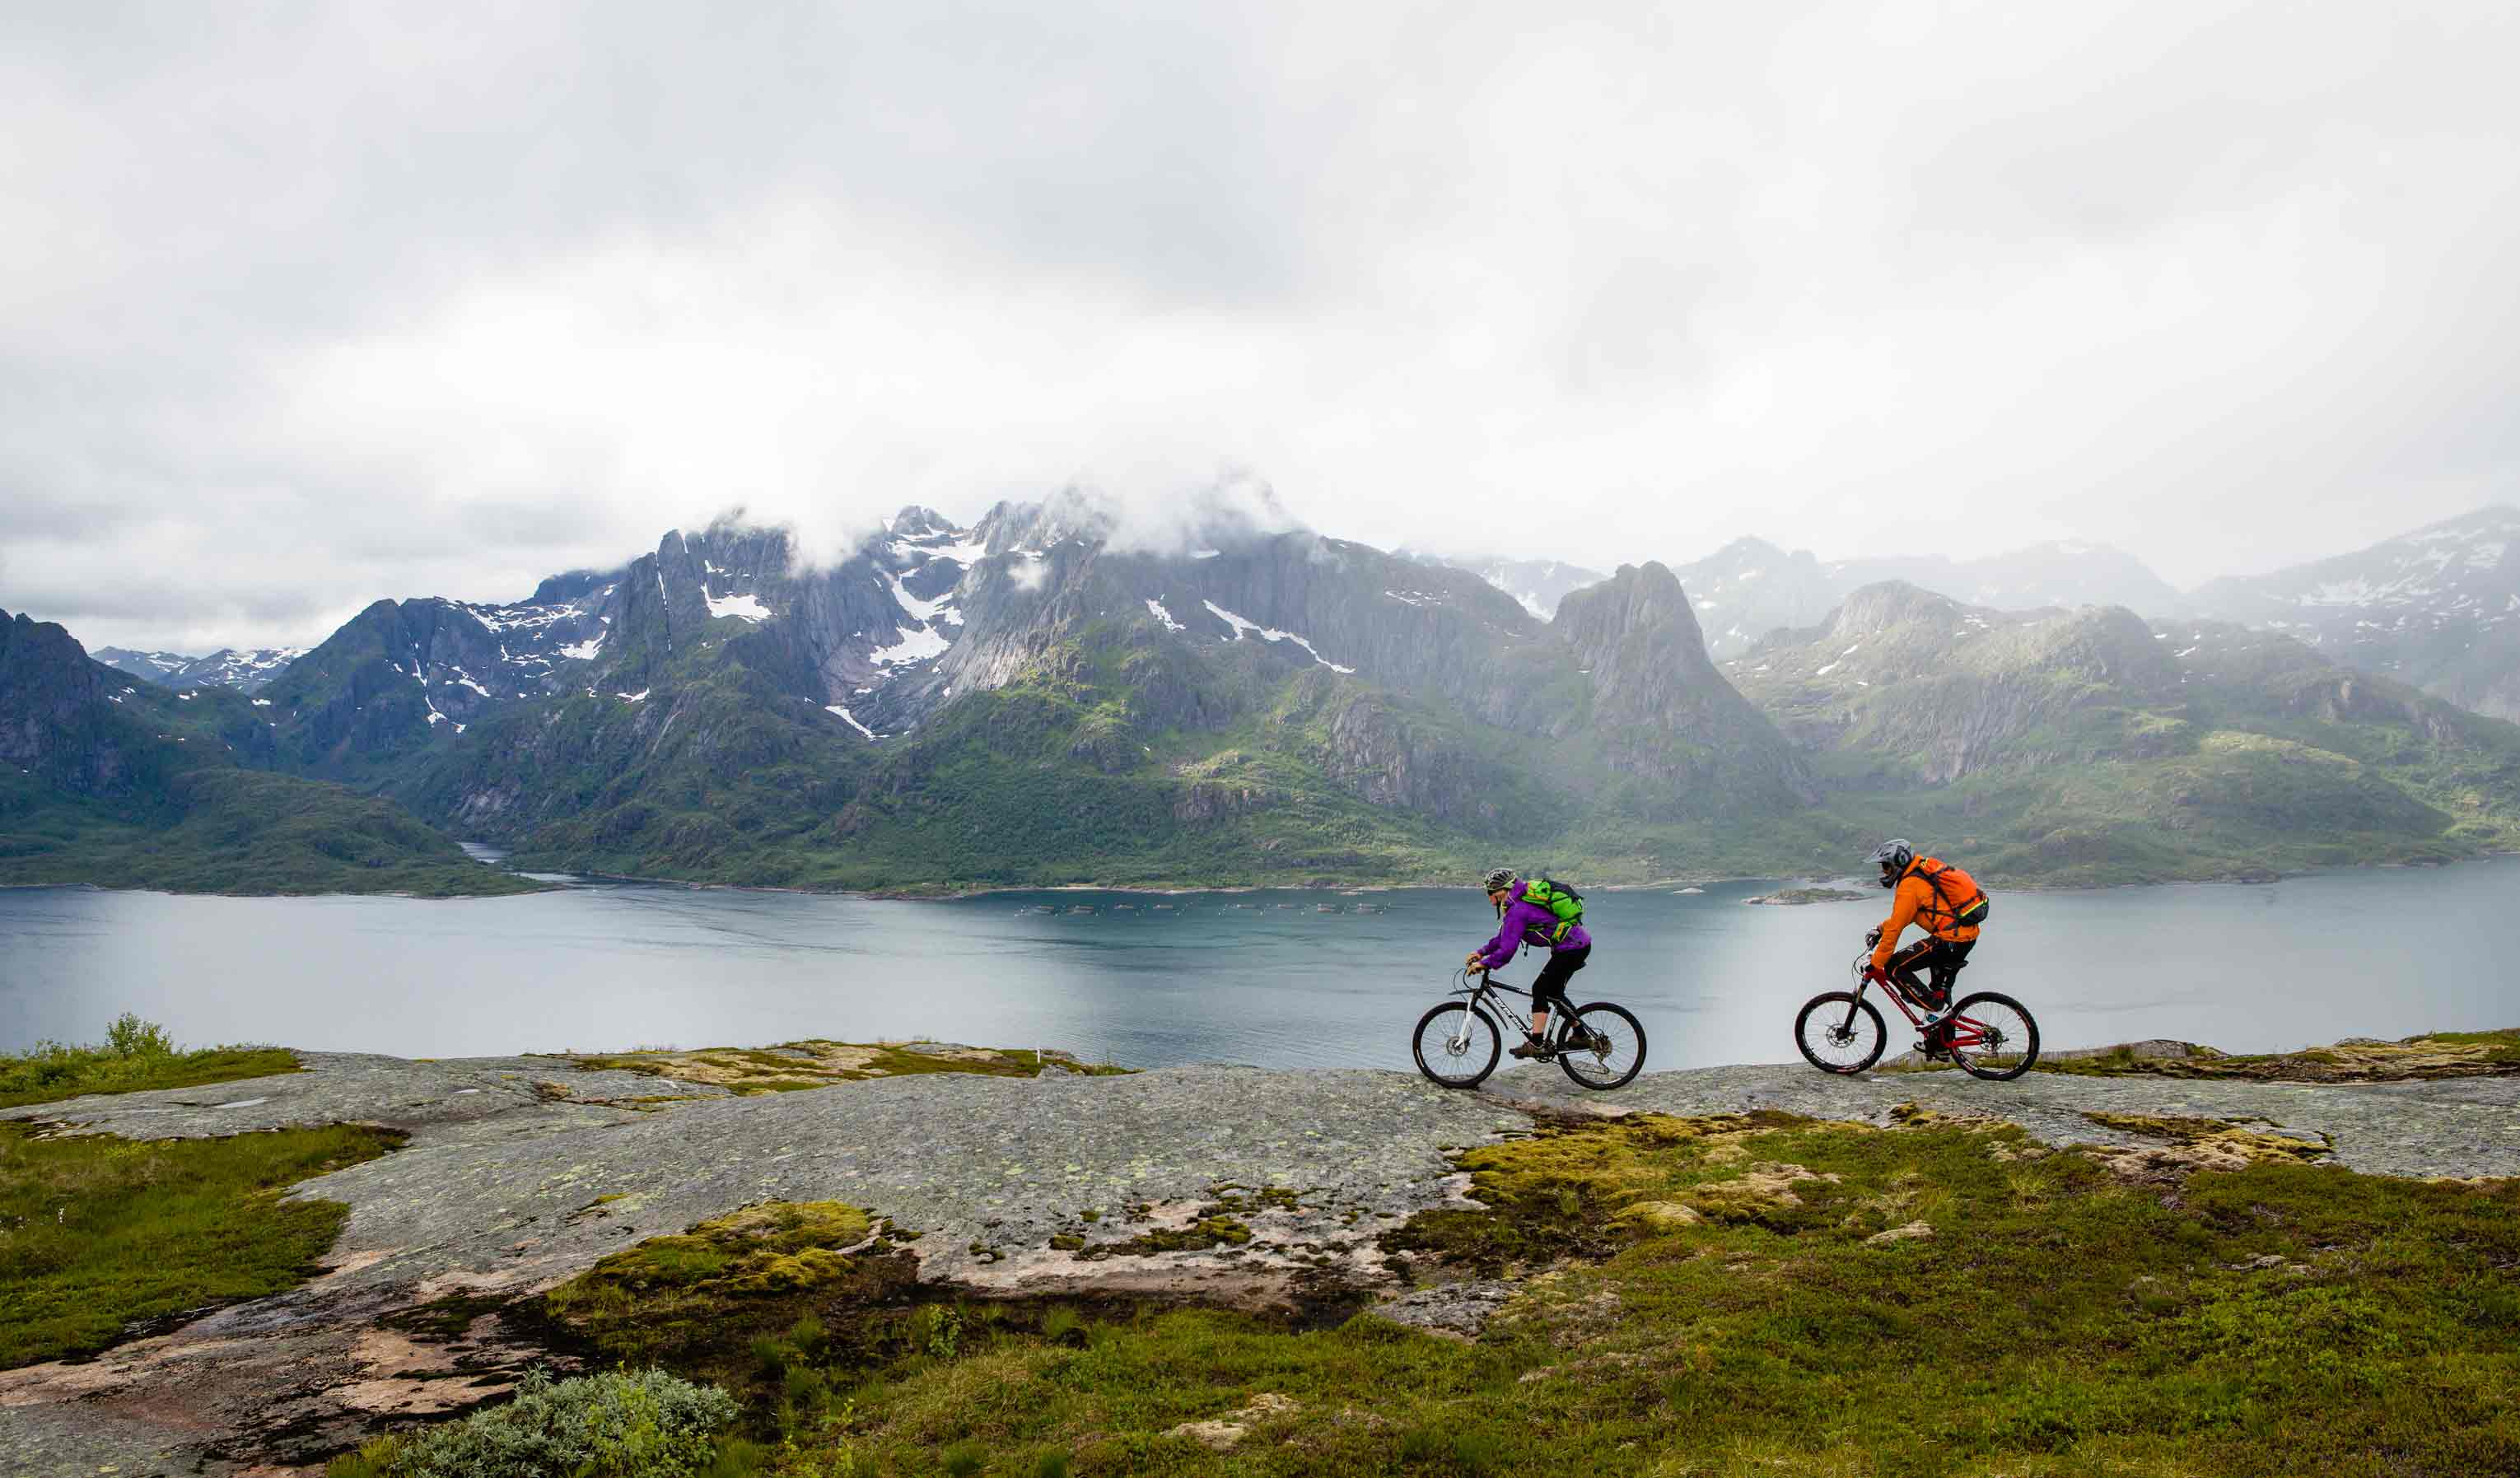 Two bikers on the coast of Vestvågøy, Lofoten.